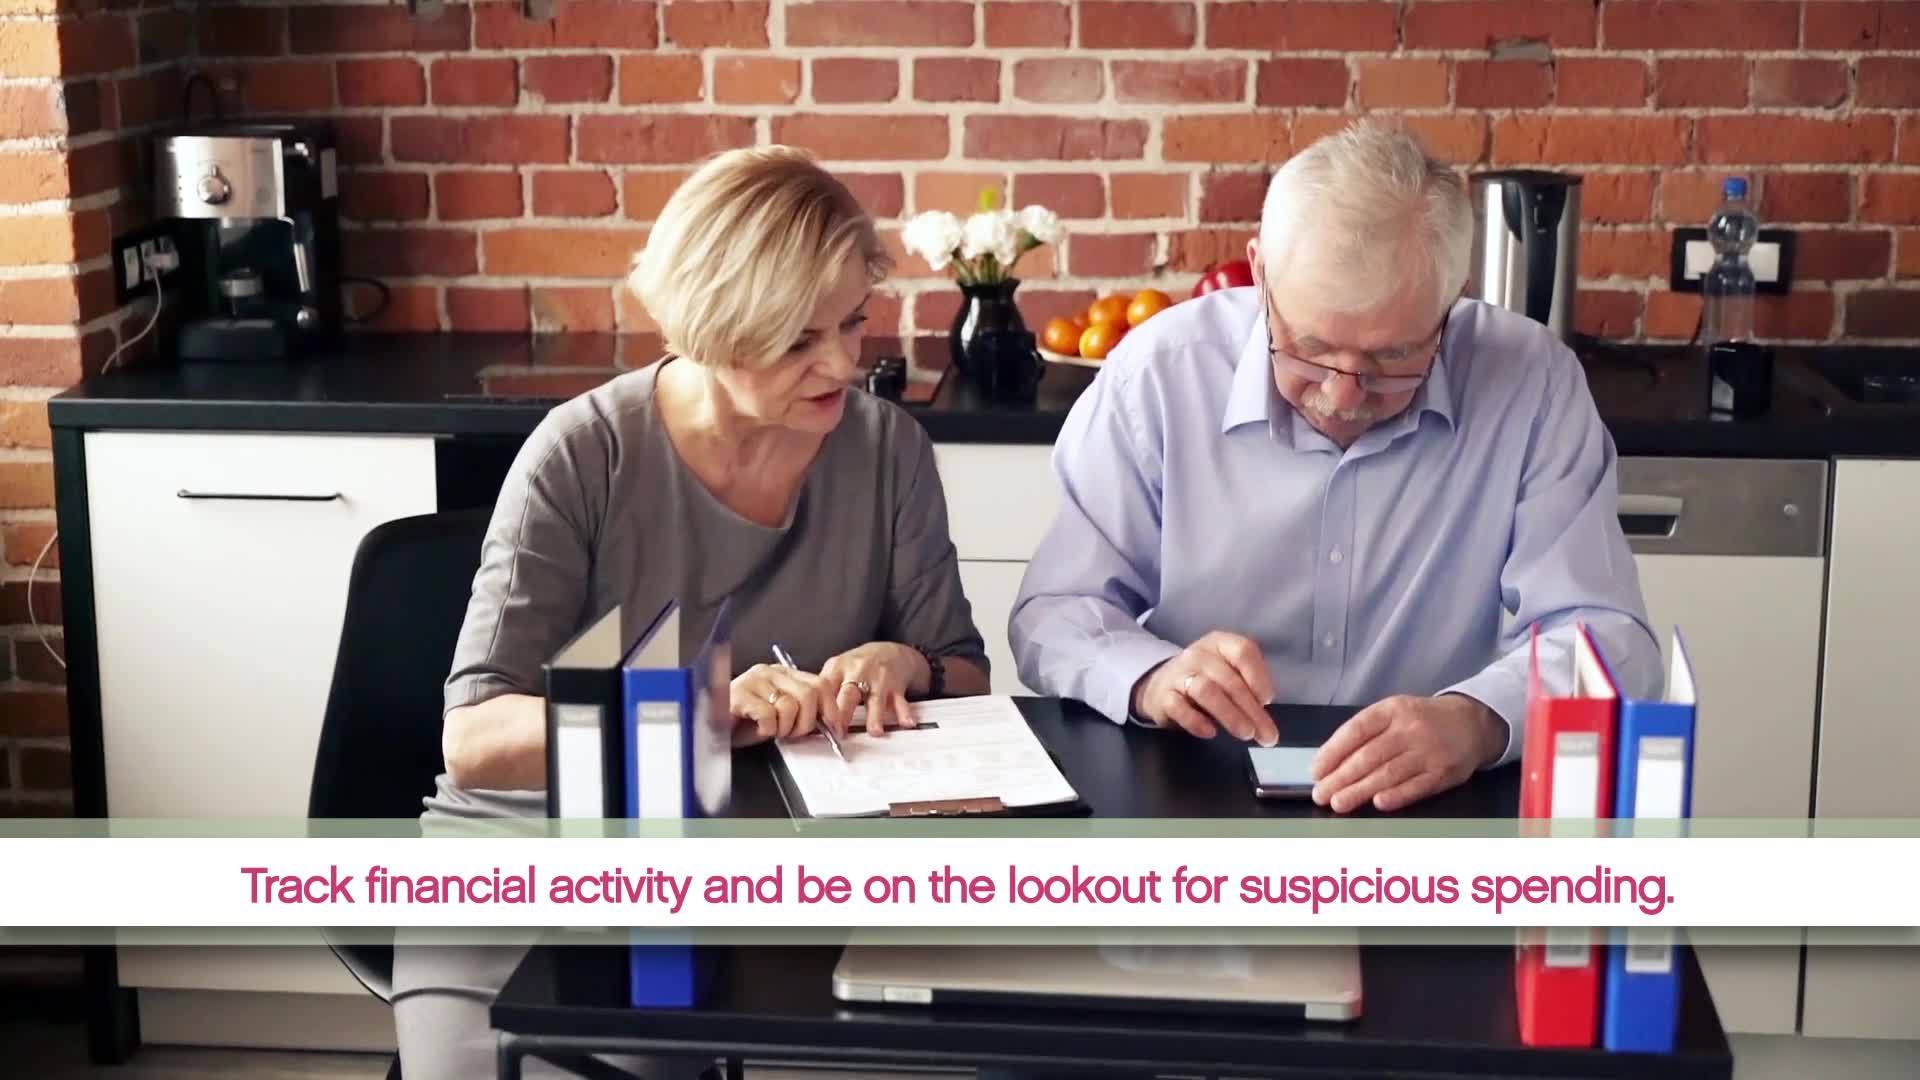 Seven_ways_to_prevent_financial_elder_ab_6_20190606163946